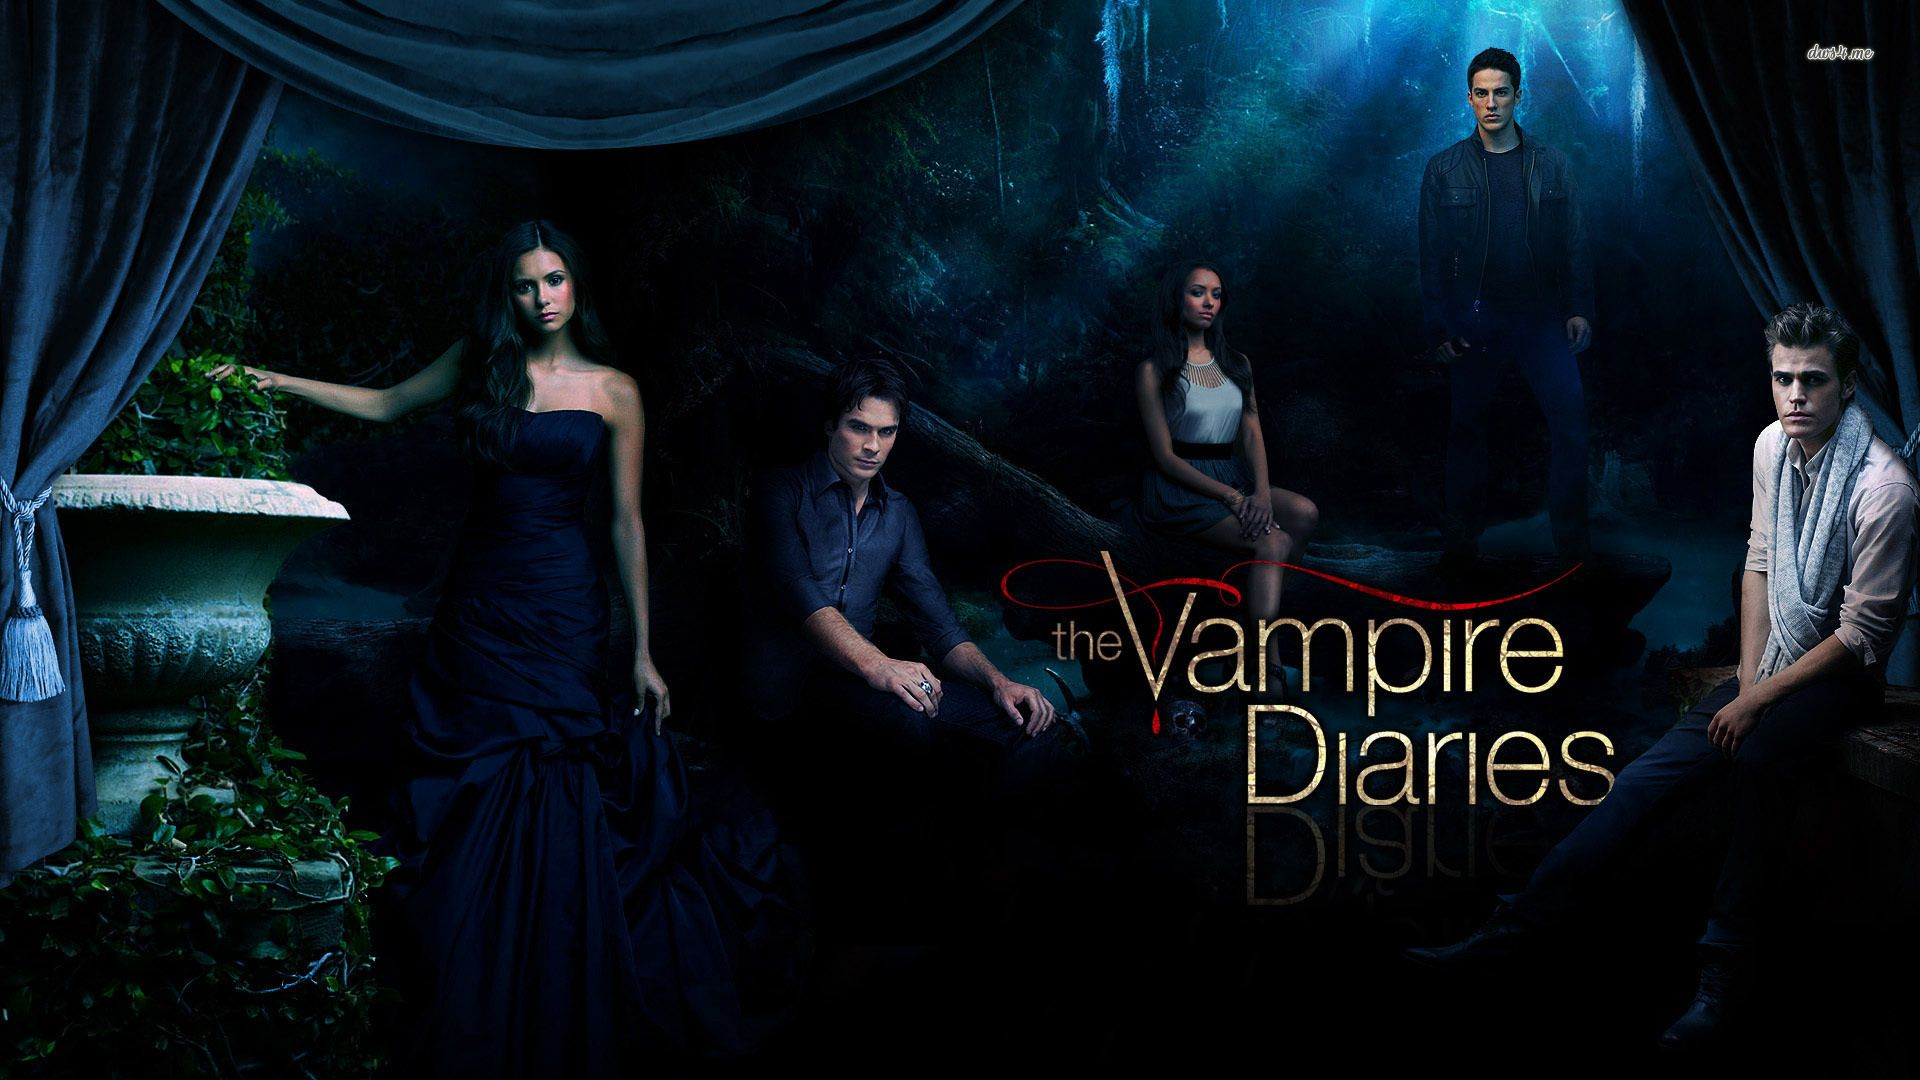 Vampire Diaries Wallpapers High Resolution and Quality Download ...